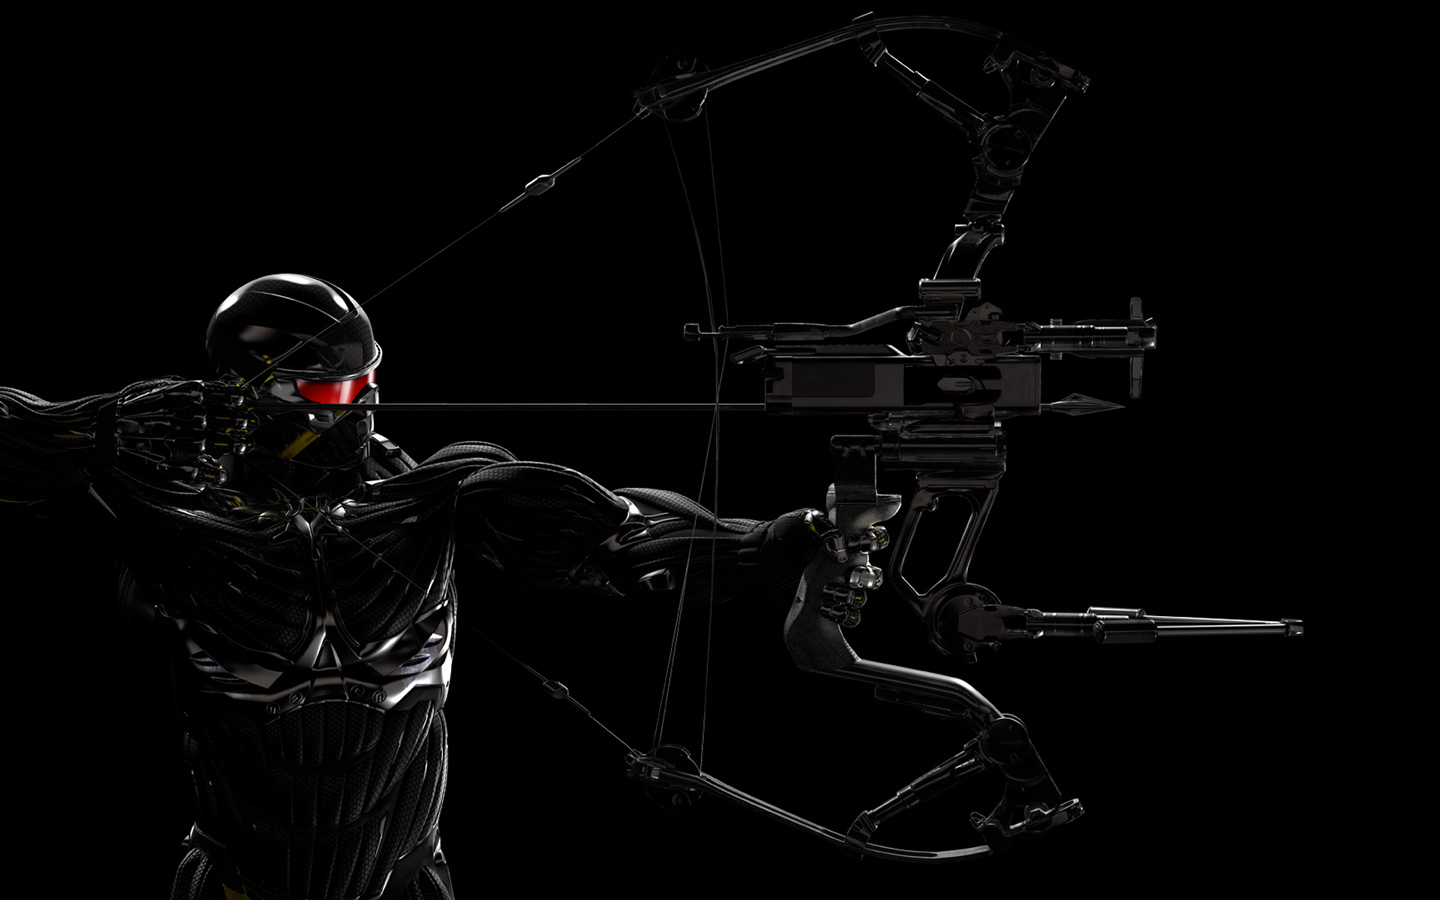 Free Crysis 3 Wallpaper in 1440x900